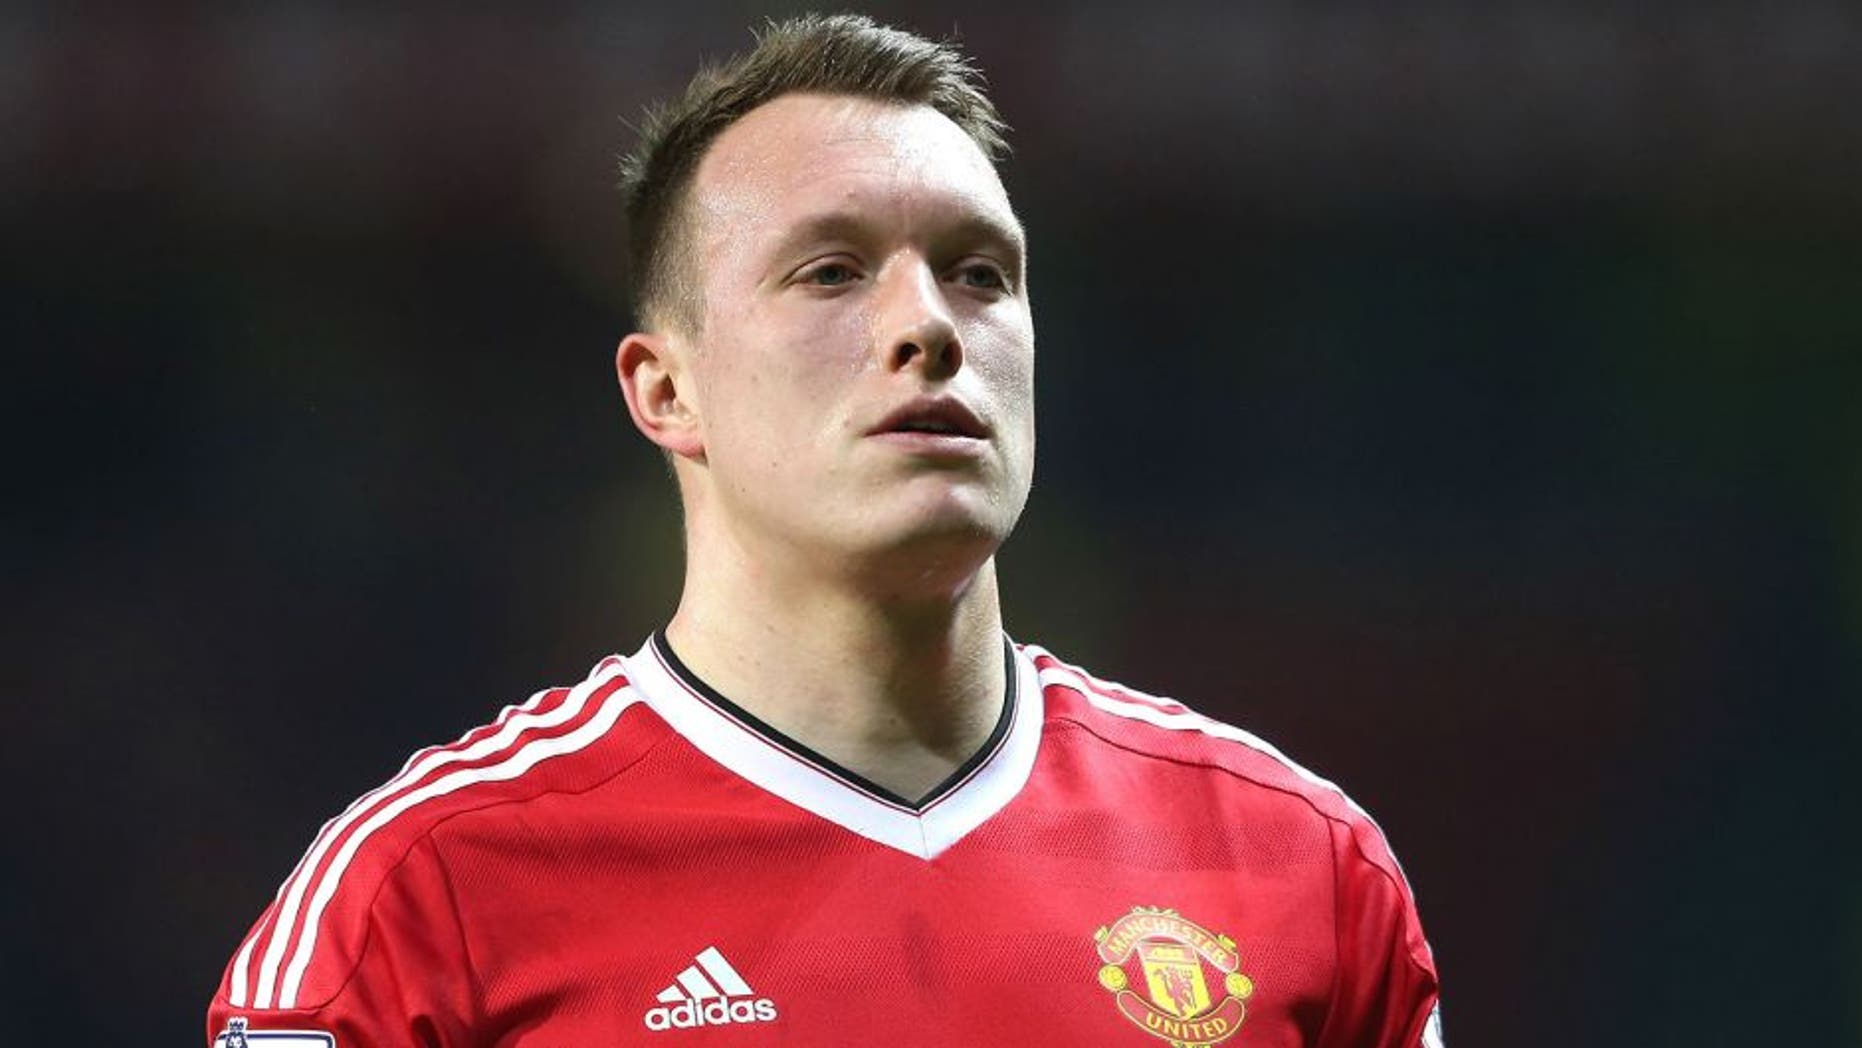 MANCHESTER, ENGLAND - DECEMBER 28: Phil Jones of Manchester United walks off after the Barclays Premier League match between Manchester United and Chelsea at Old Trafford on December 28, 2015 in Manchester, England. (Photo by Tom Purslow/Man Utd via Getty Images)